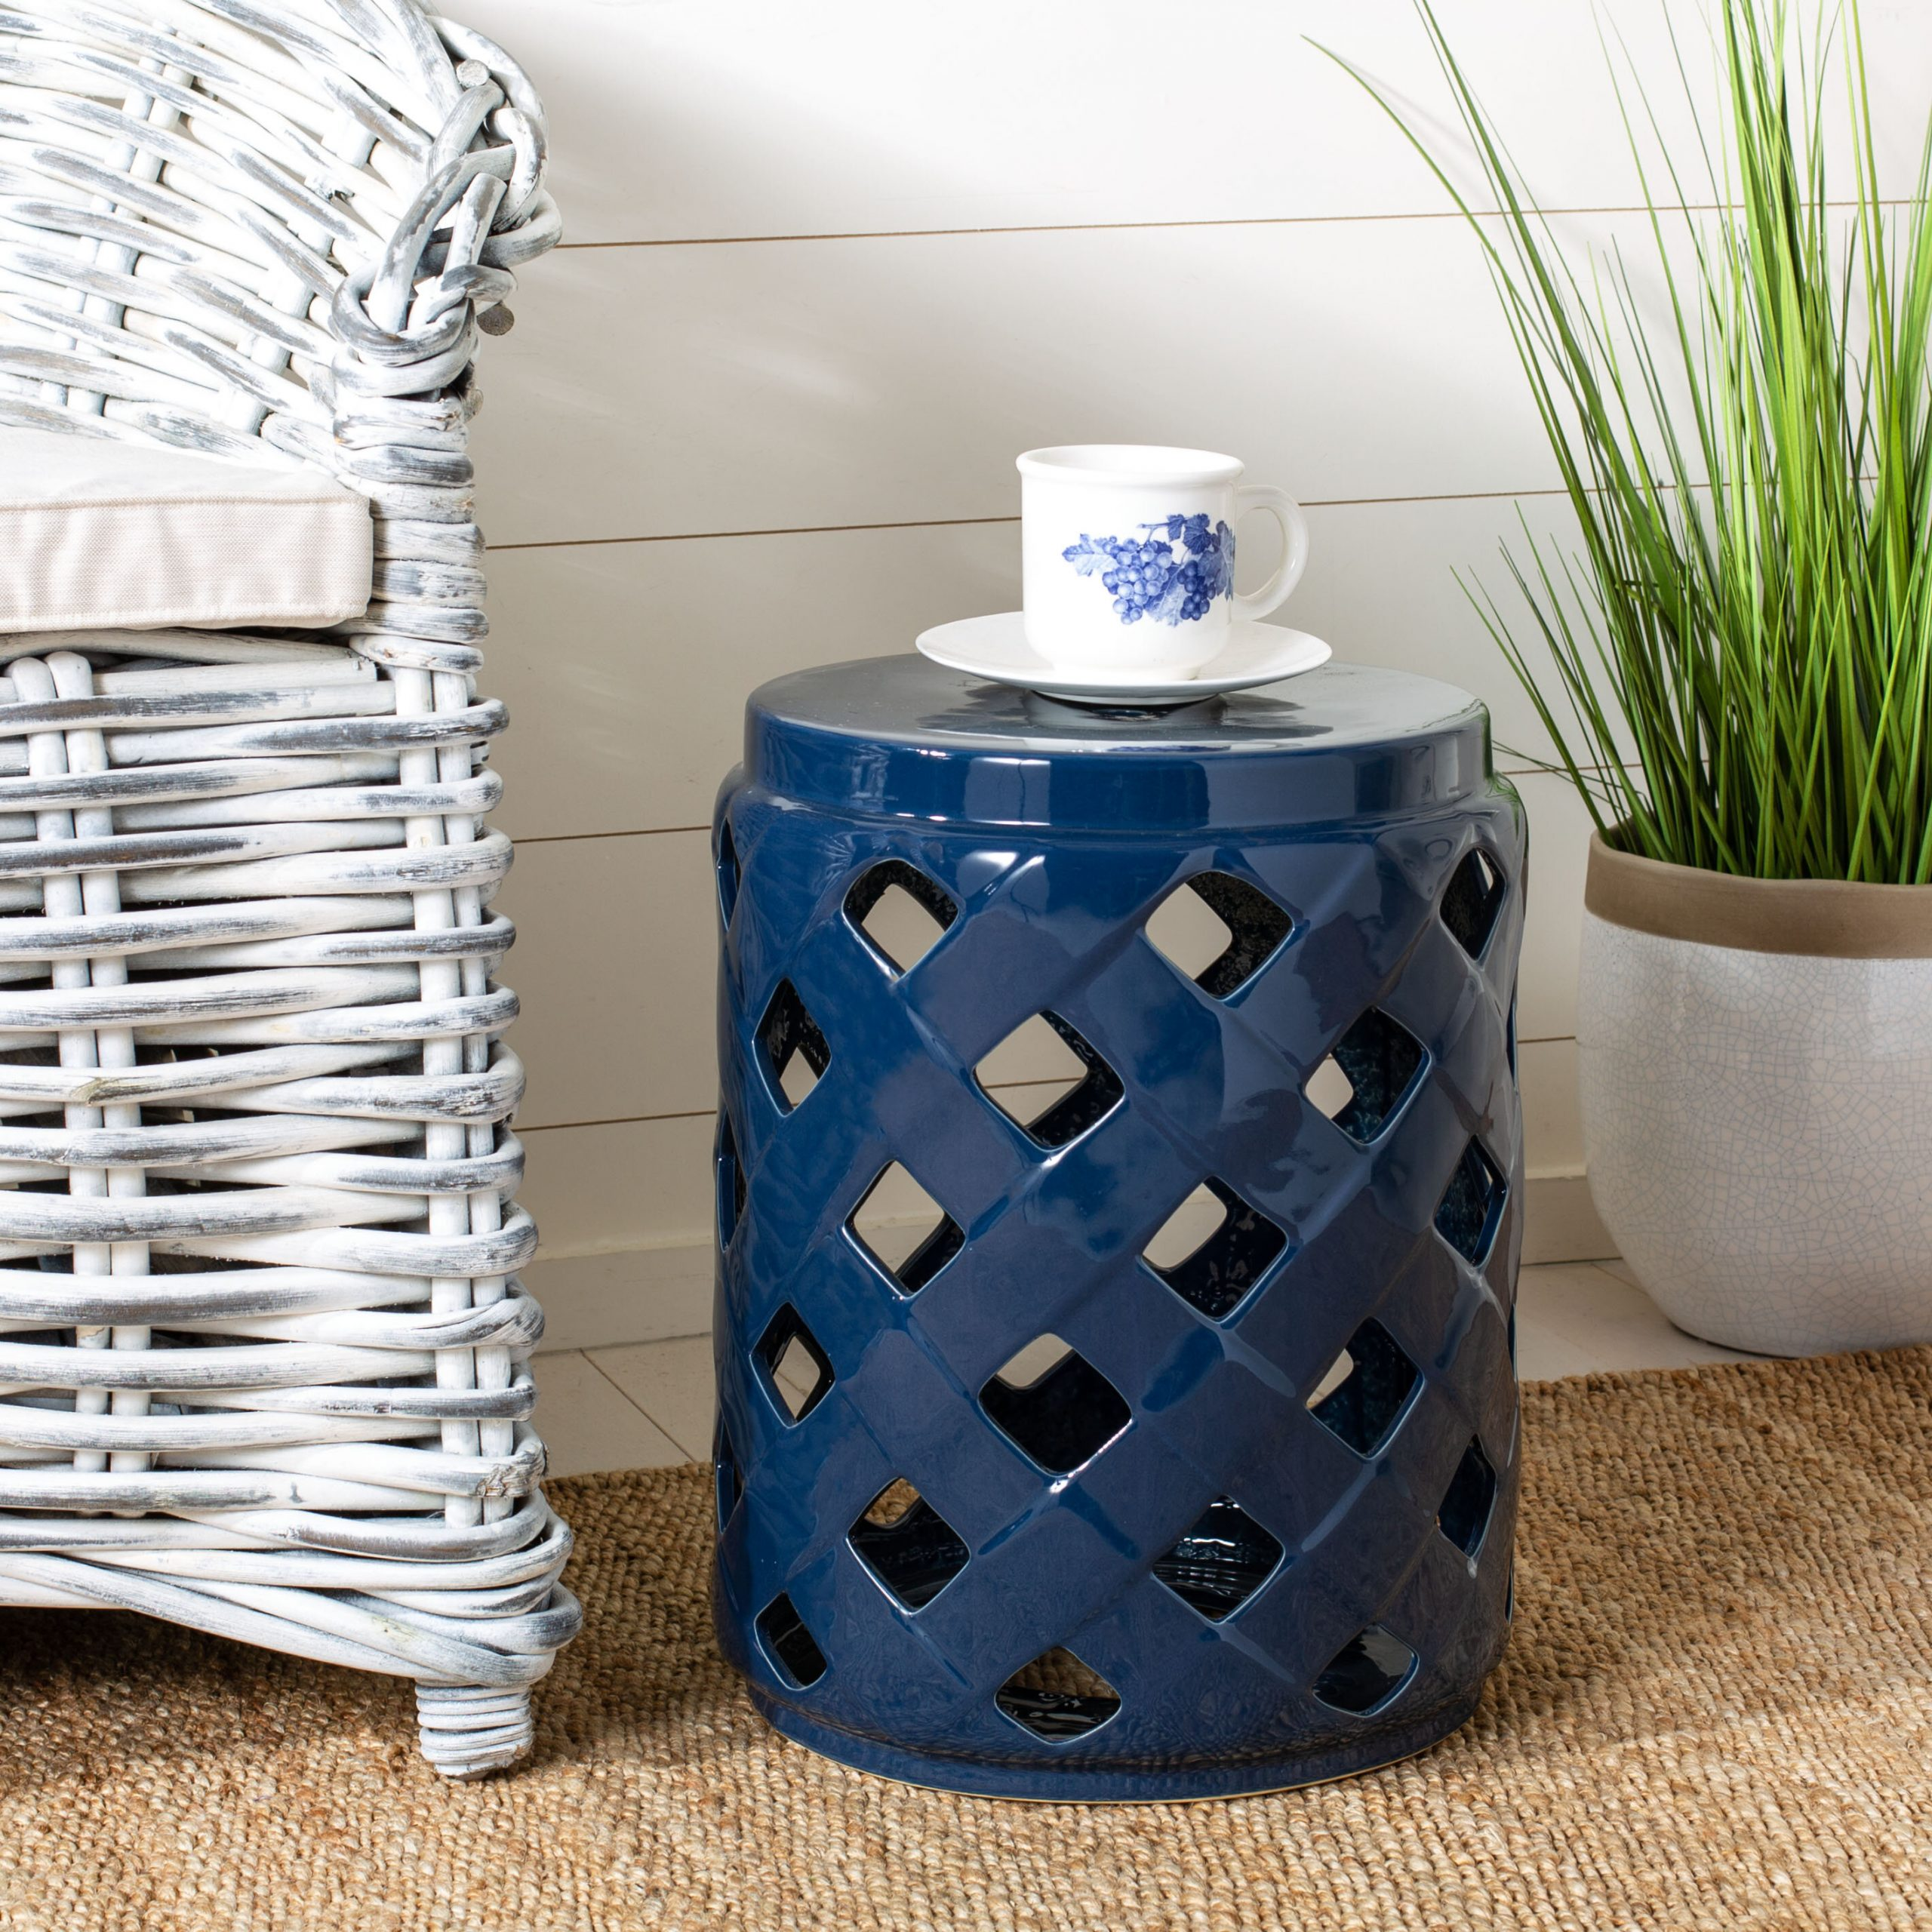 Garden Stools | Wayfair With Regard To Svendsen Ceramic Garden Stools (View 13 of 25)